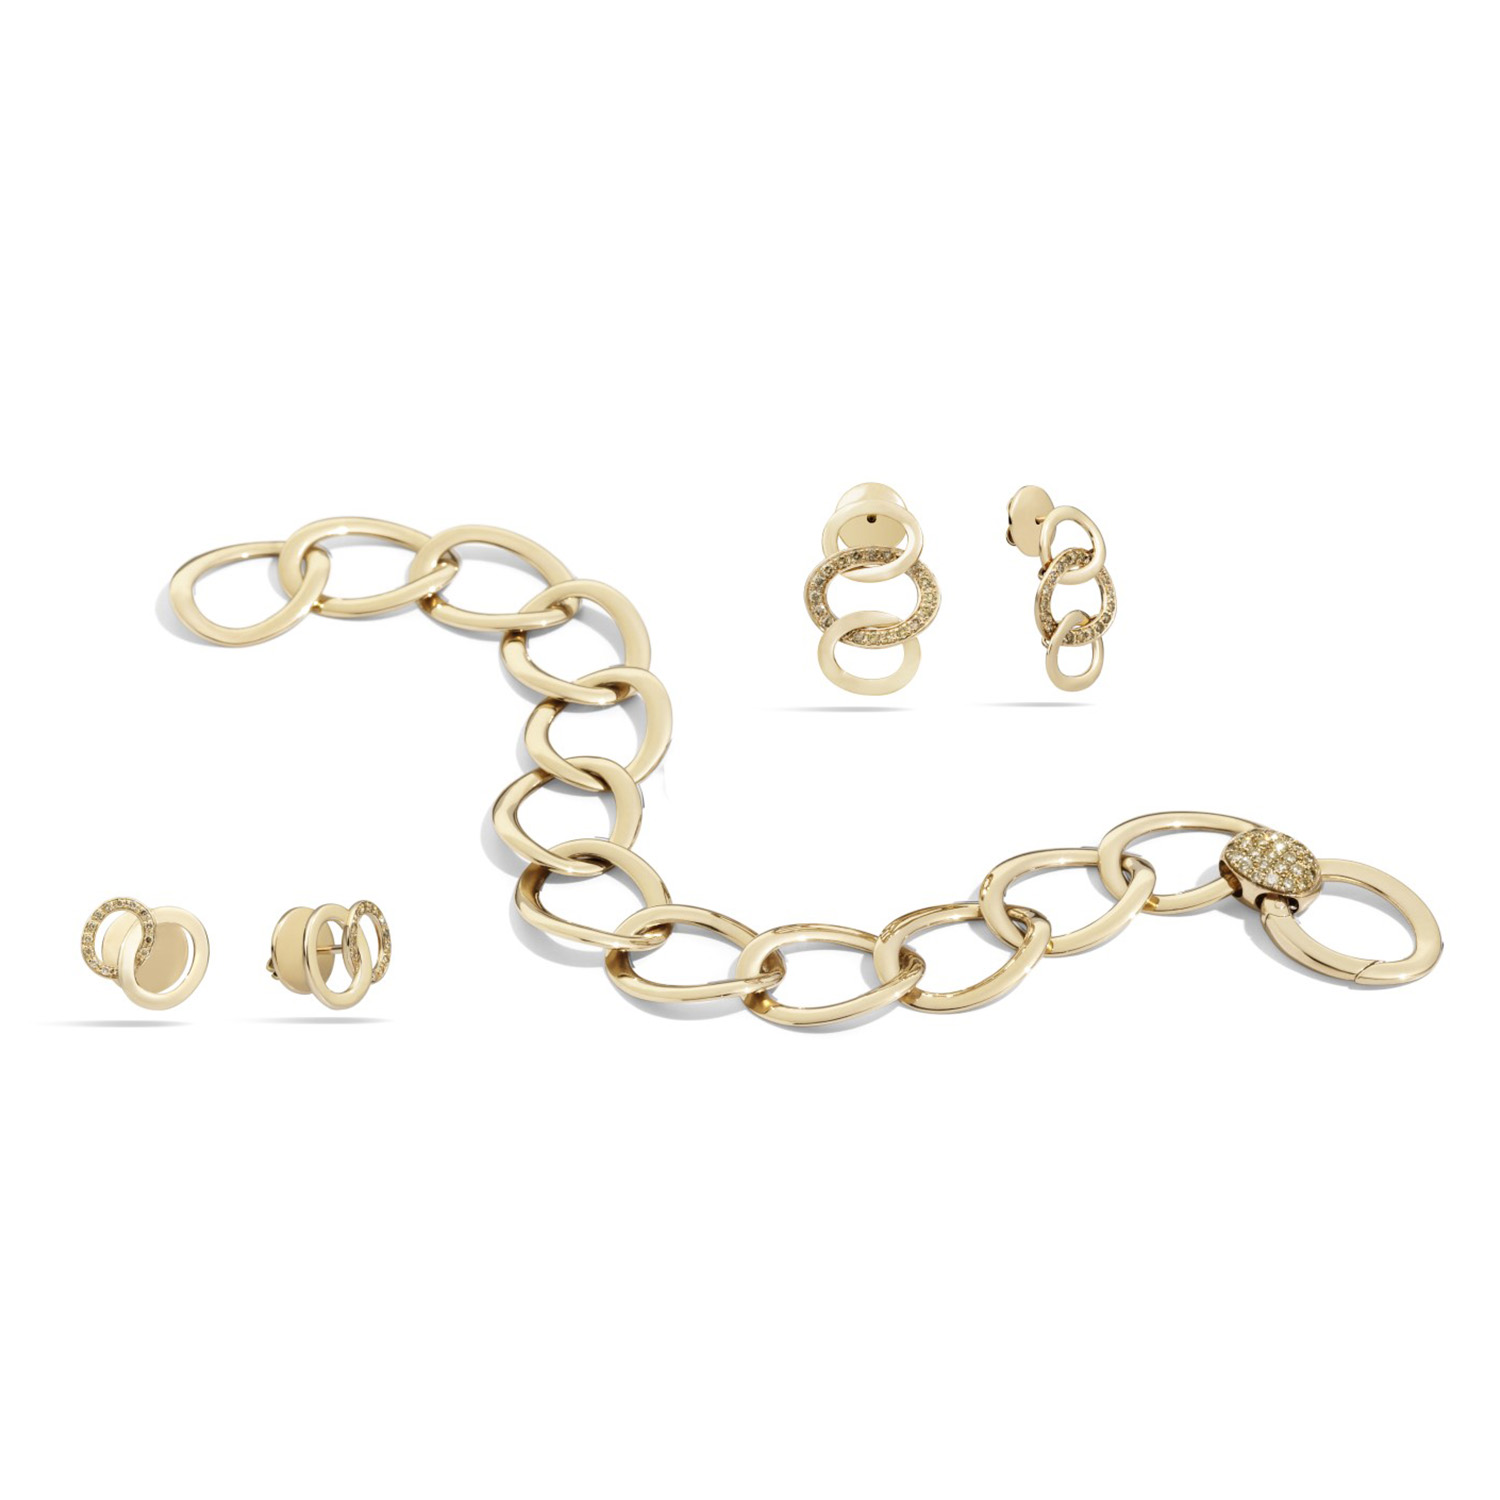 pomellato-orecchini_0001_brera_rose-gold-bracelet-and-earrings